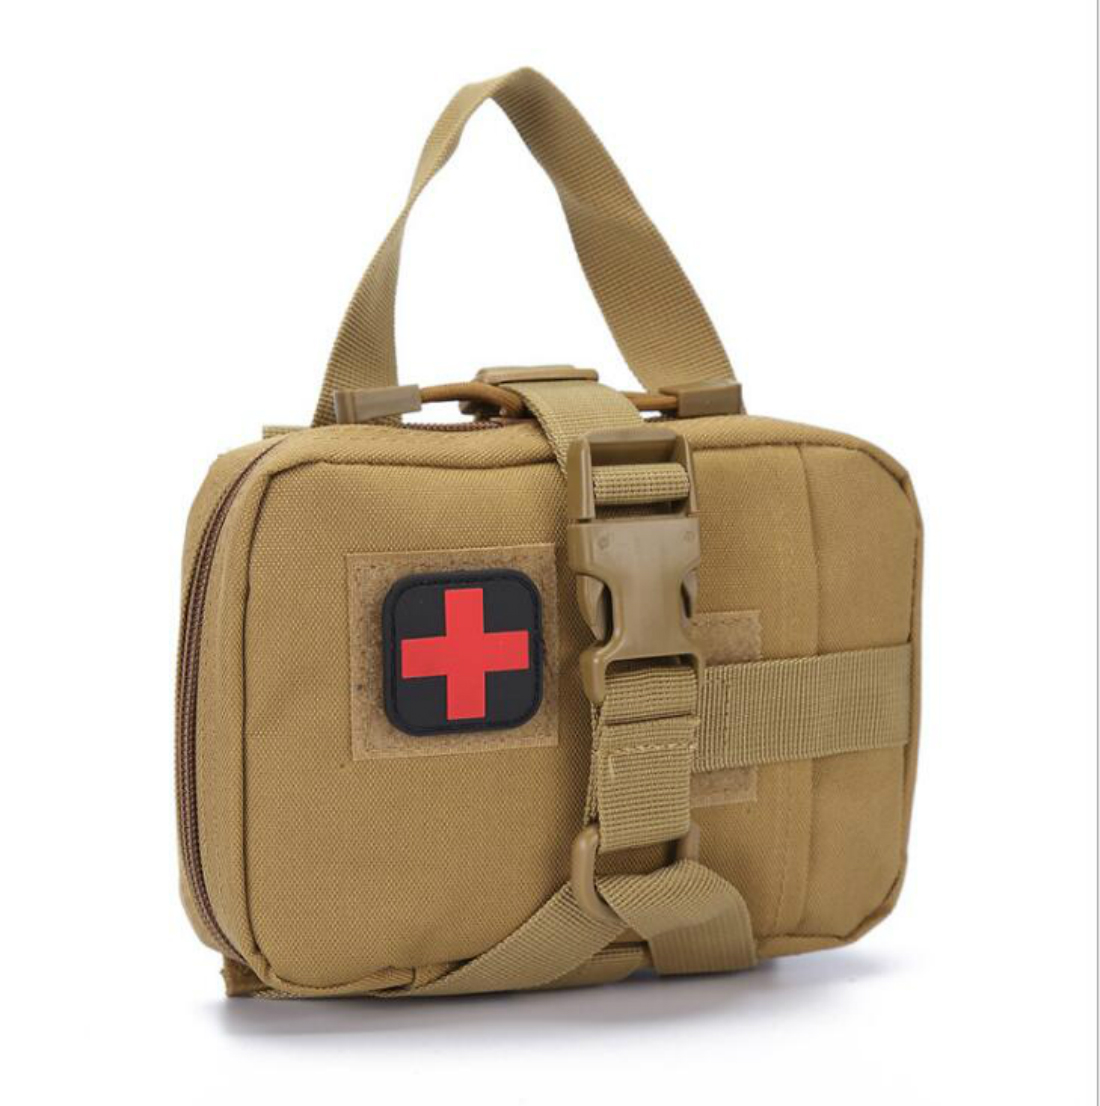 Blowout Utility Rip-away Emt Pouch Molle Pouch Ifak = Medical First Aid Kit Utility Pouch 1000D Nylon with First Aid Patch